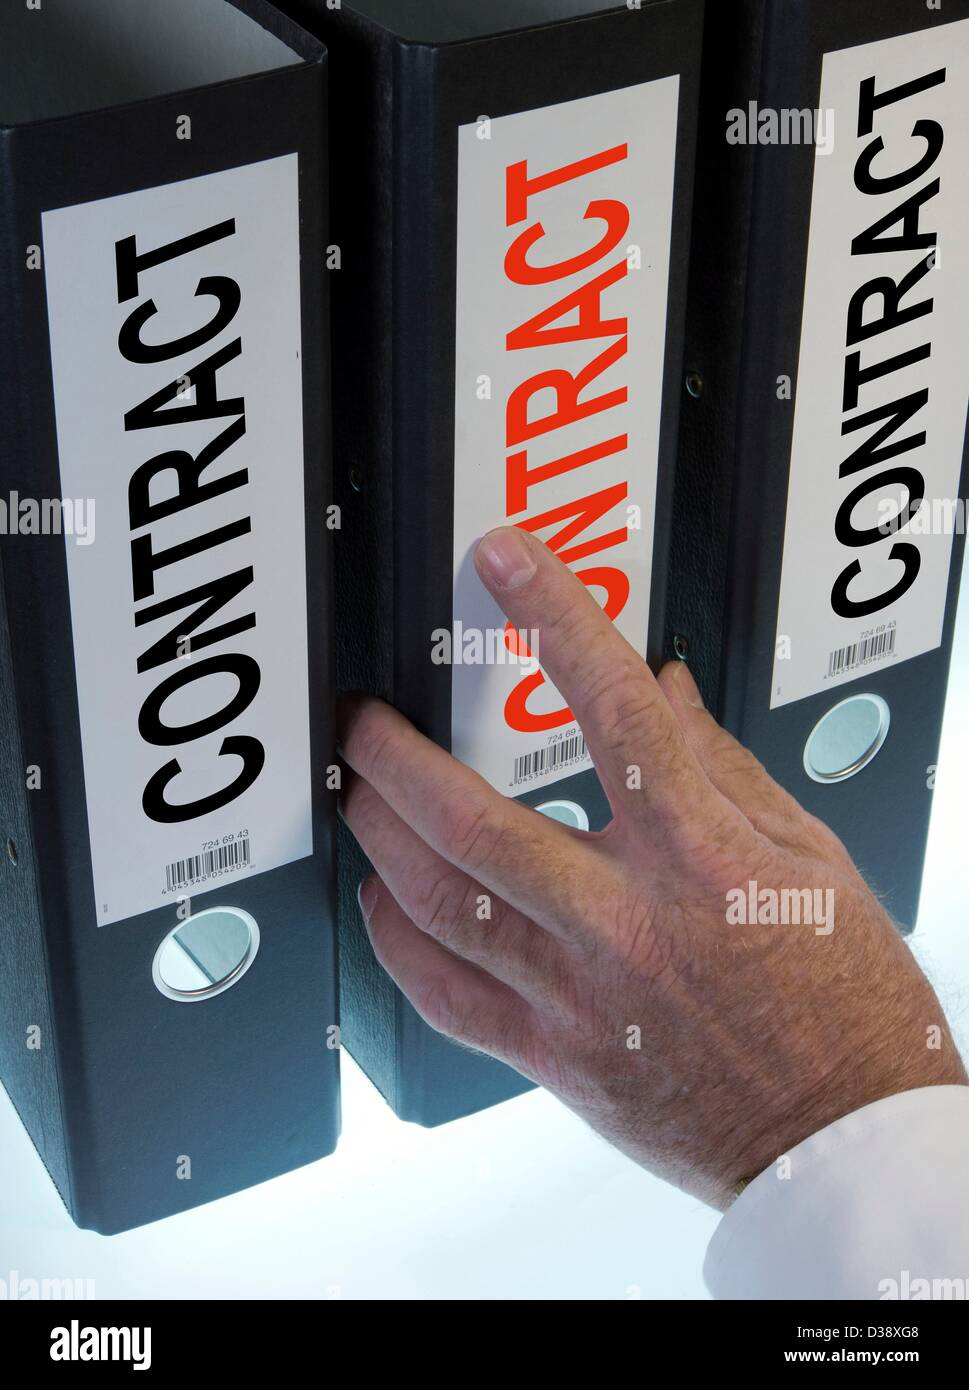 Symbol image,hand pointing to a file folder  labeled Contract - Stock Image